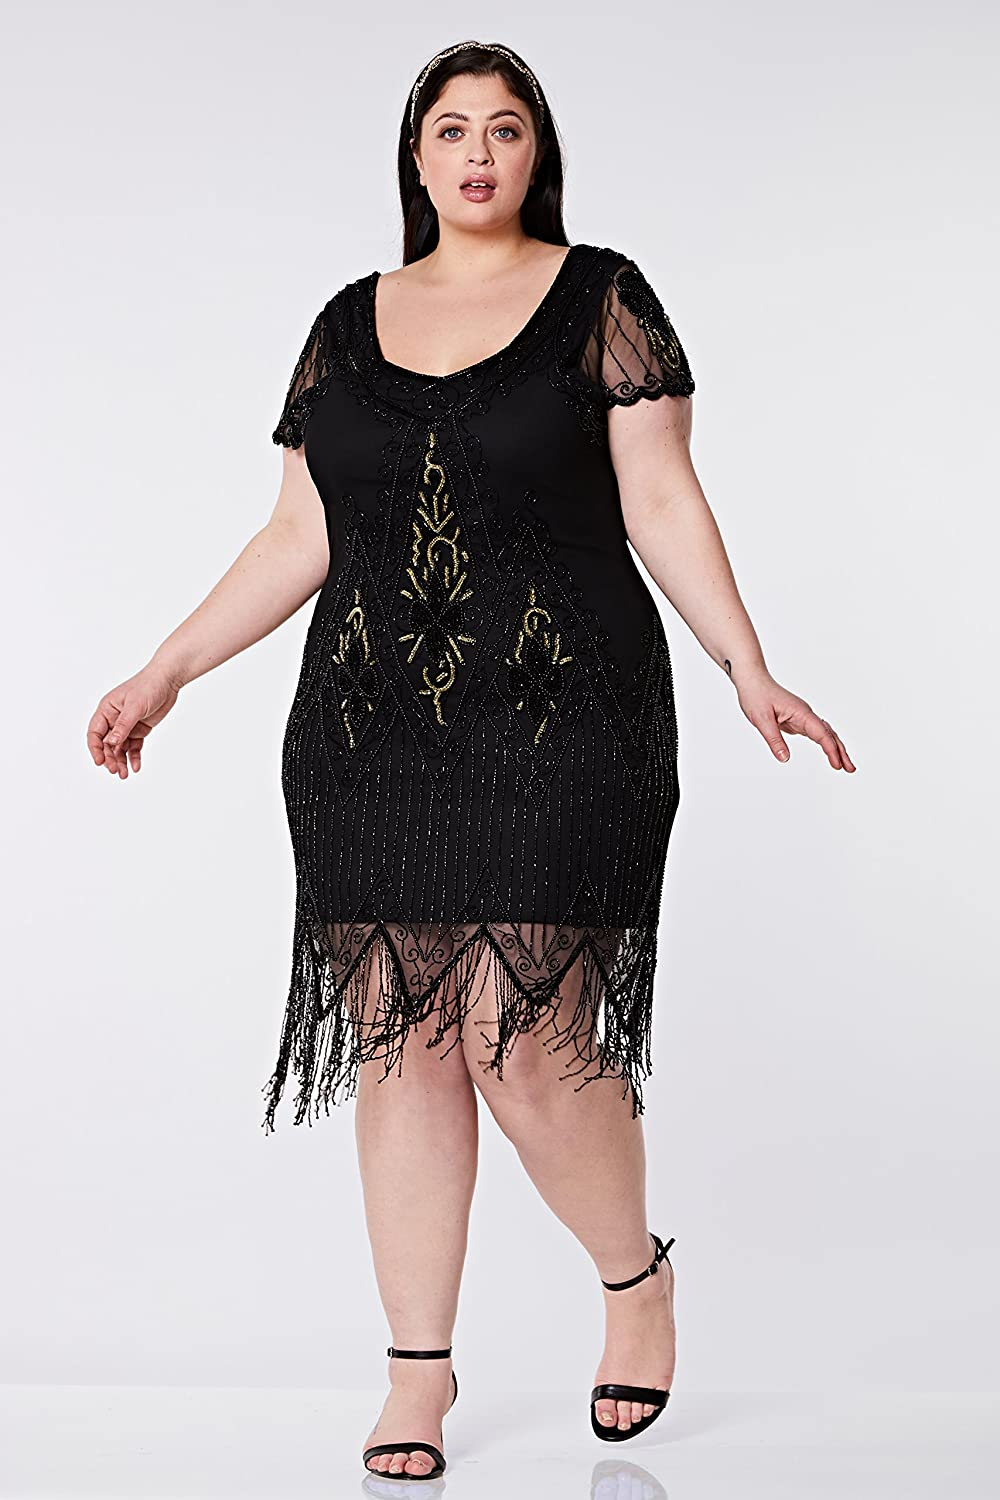 Great Gatsby Dress – Great Gatsby Dresses for Sale gatsbylady london Annette Vintage Inspired Fringe Flapper Dress in Black Gold $124.86 AT vintagedancer.com